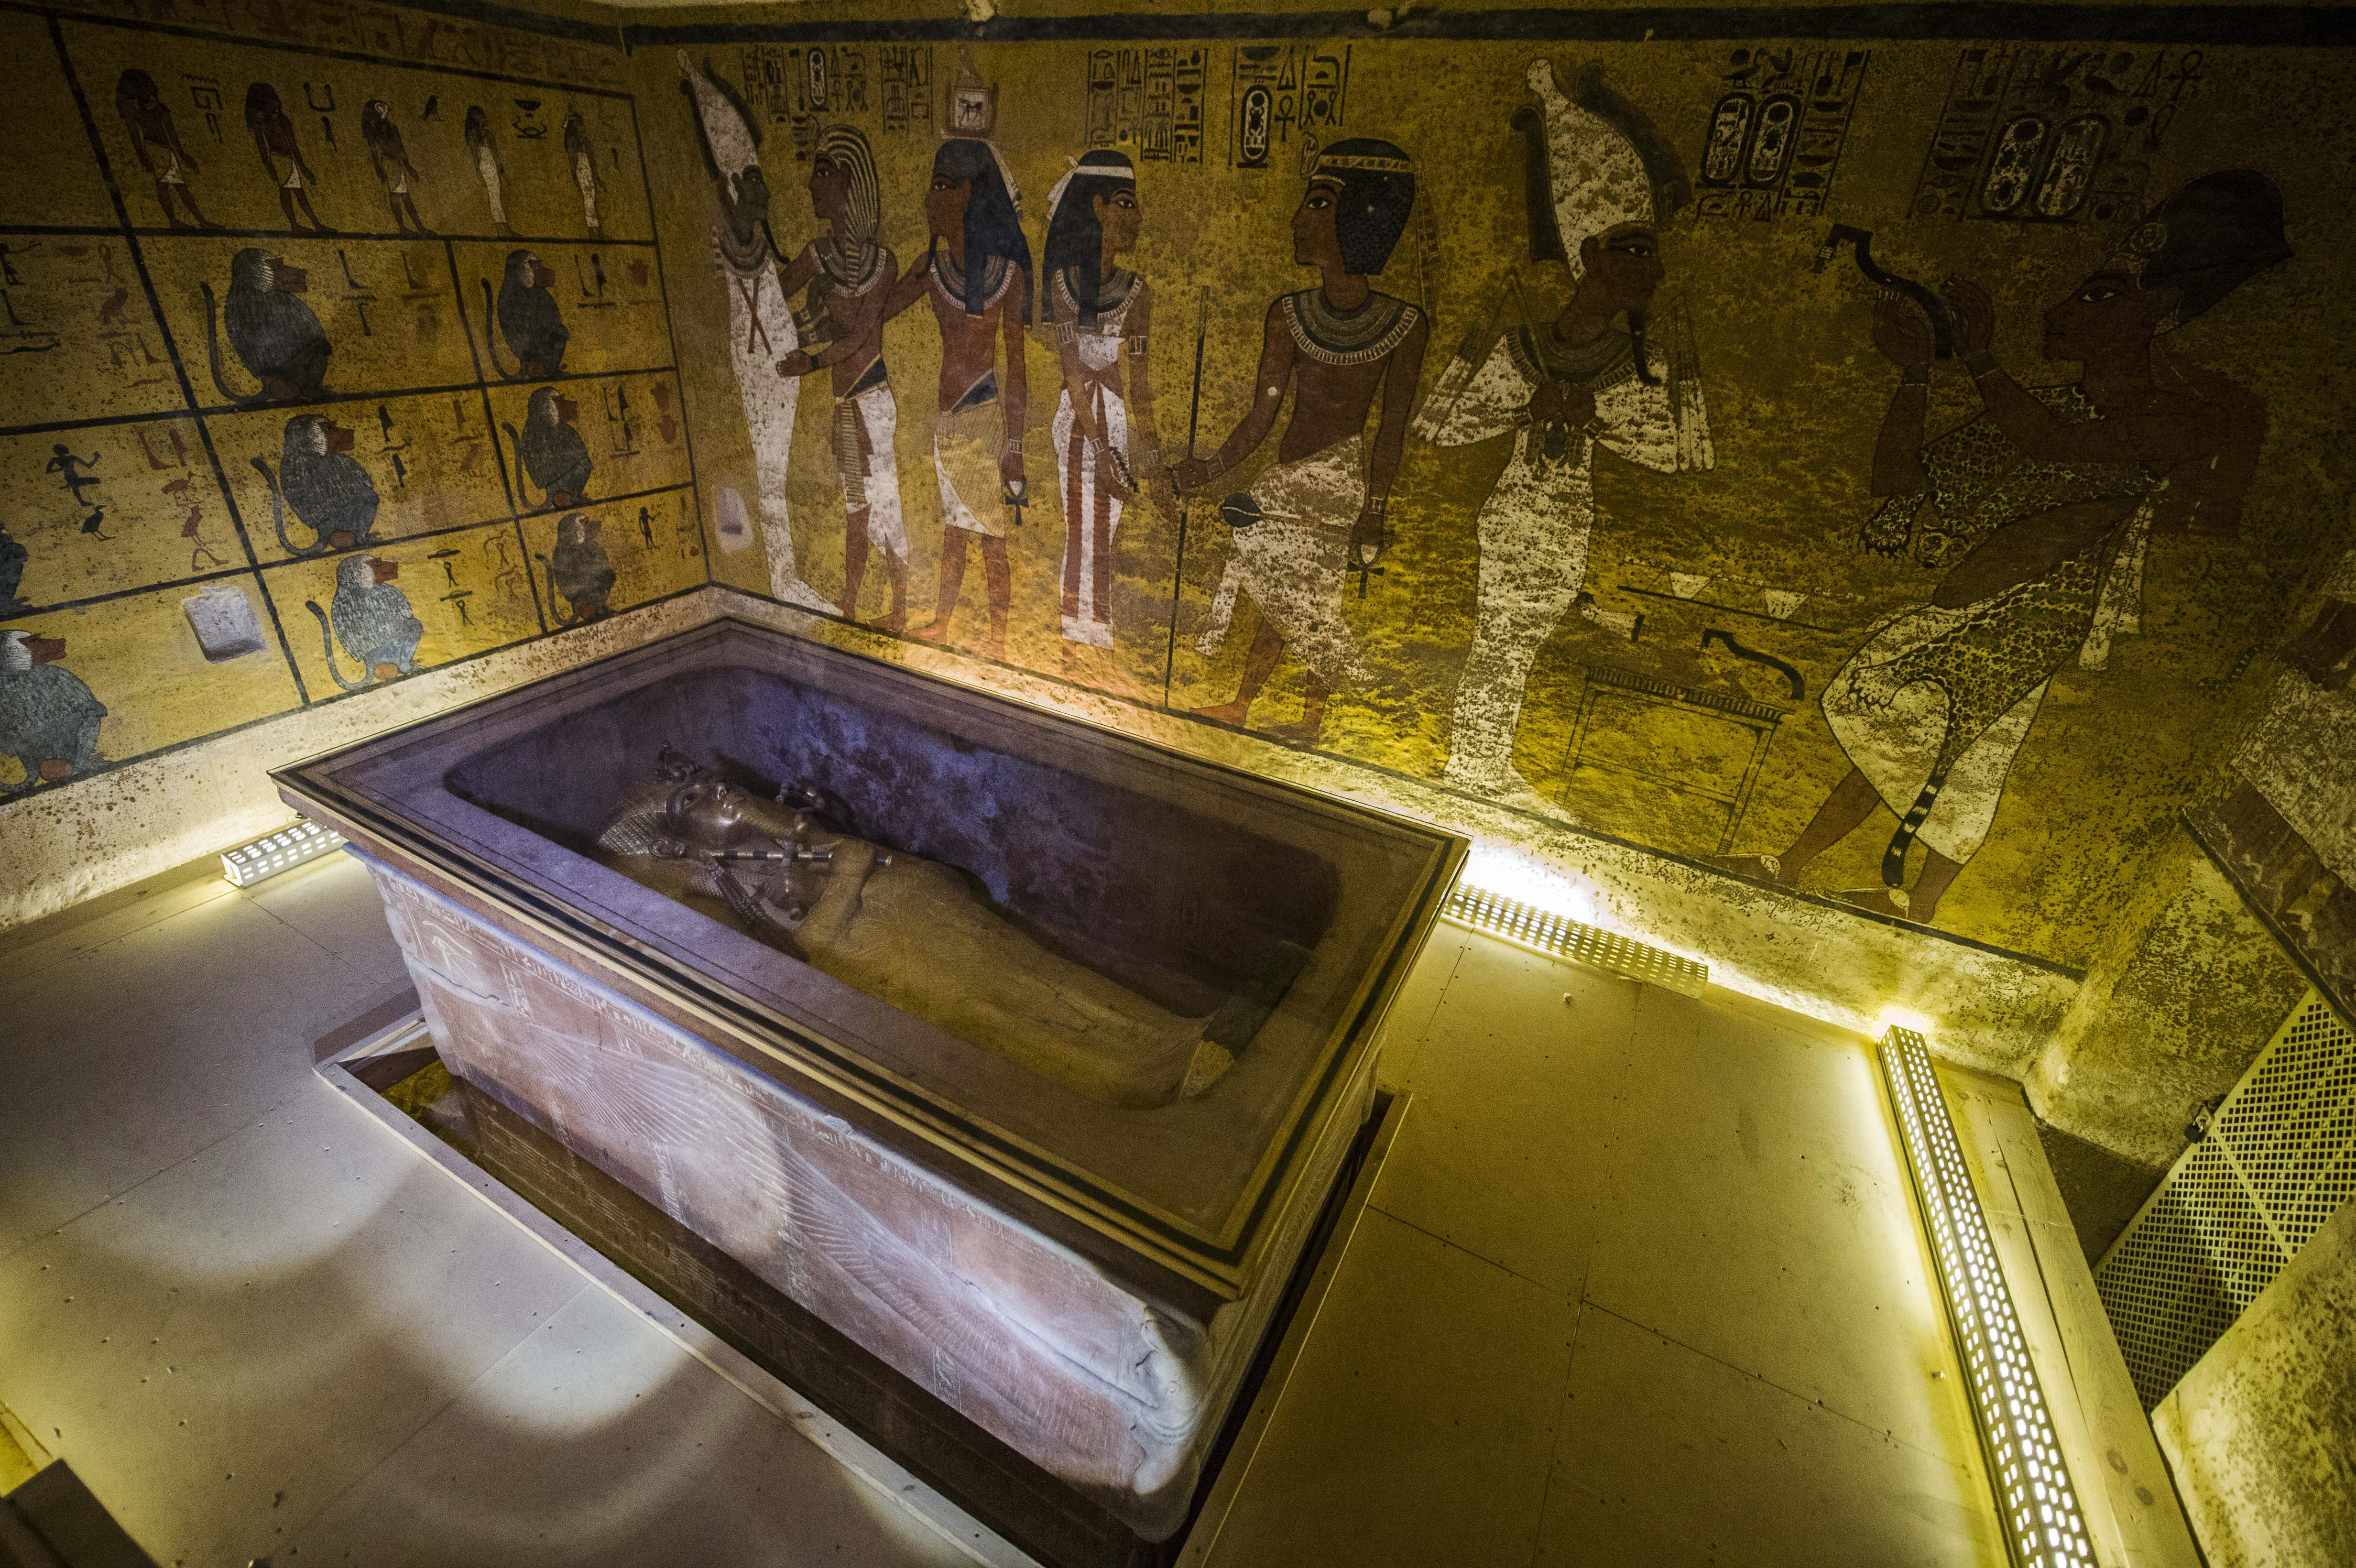 The sarcophagus of King Tutankhamun displayed in his burial chamber in the Valley of the Kings, close to Luxor, Egypt on Nov. 28, 2015.